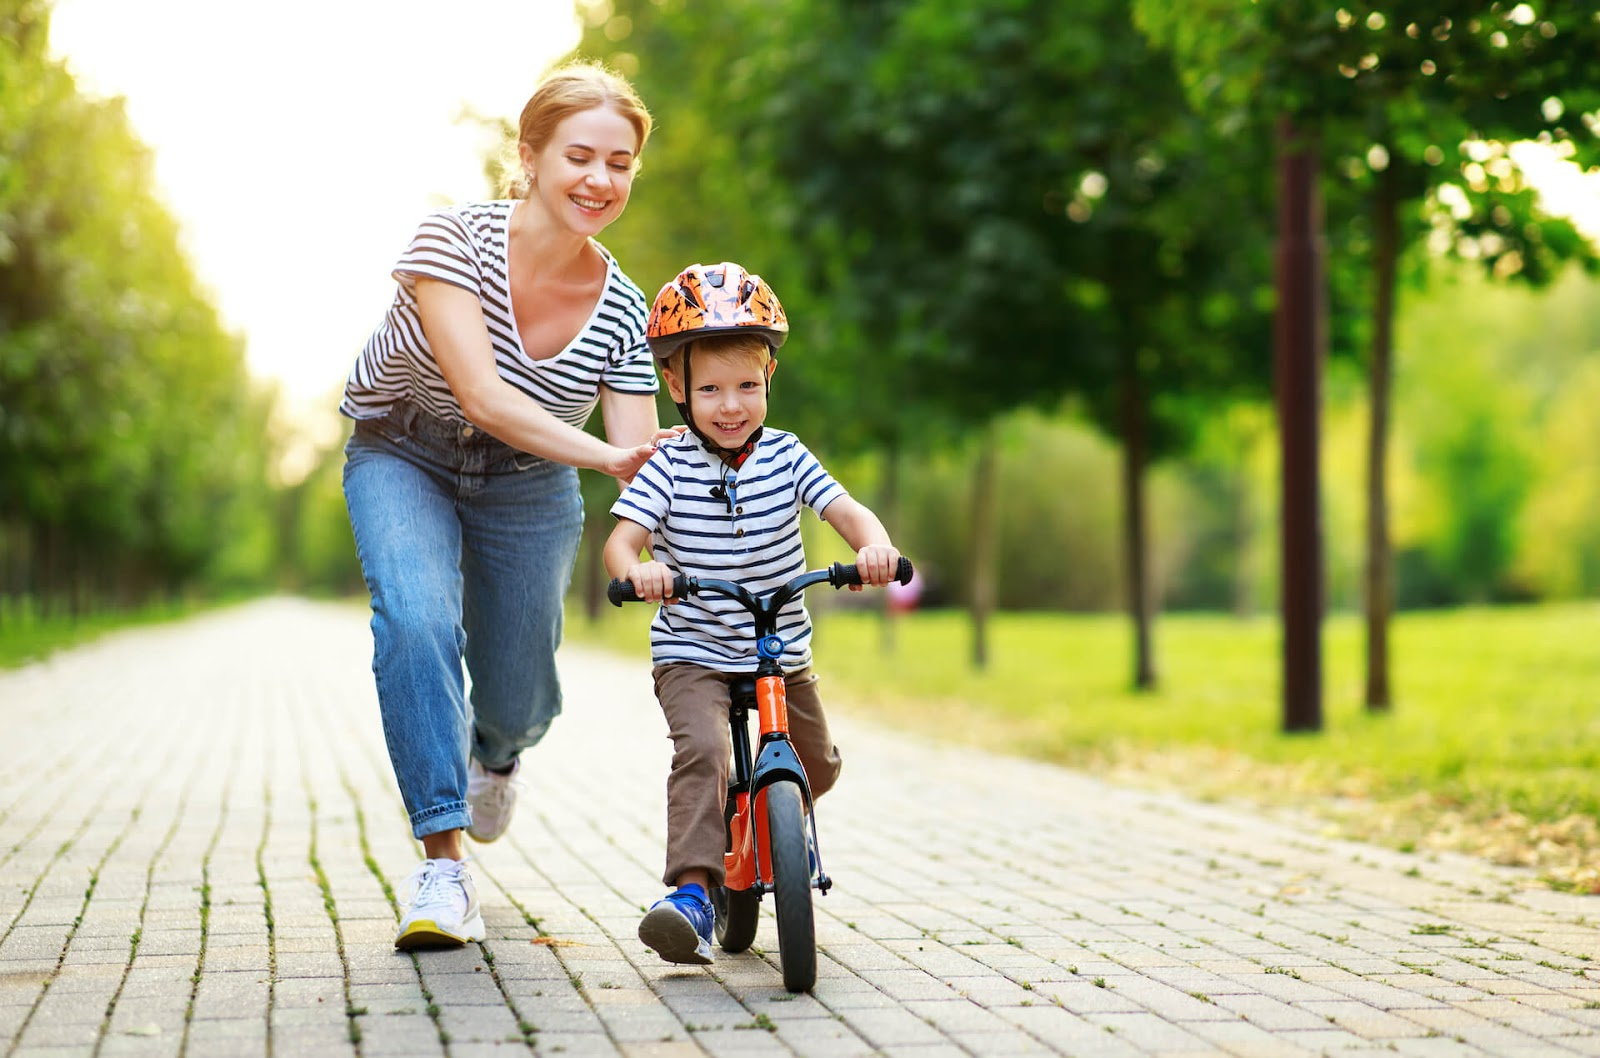 Mom teaching her son to ride a bike